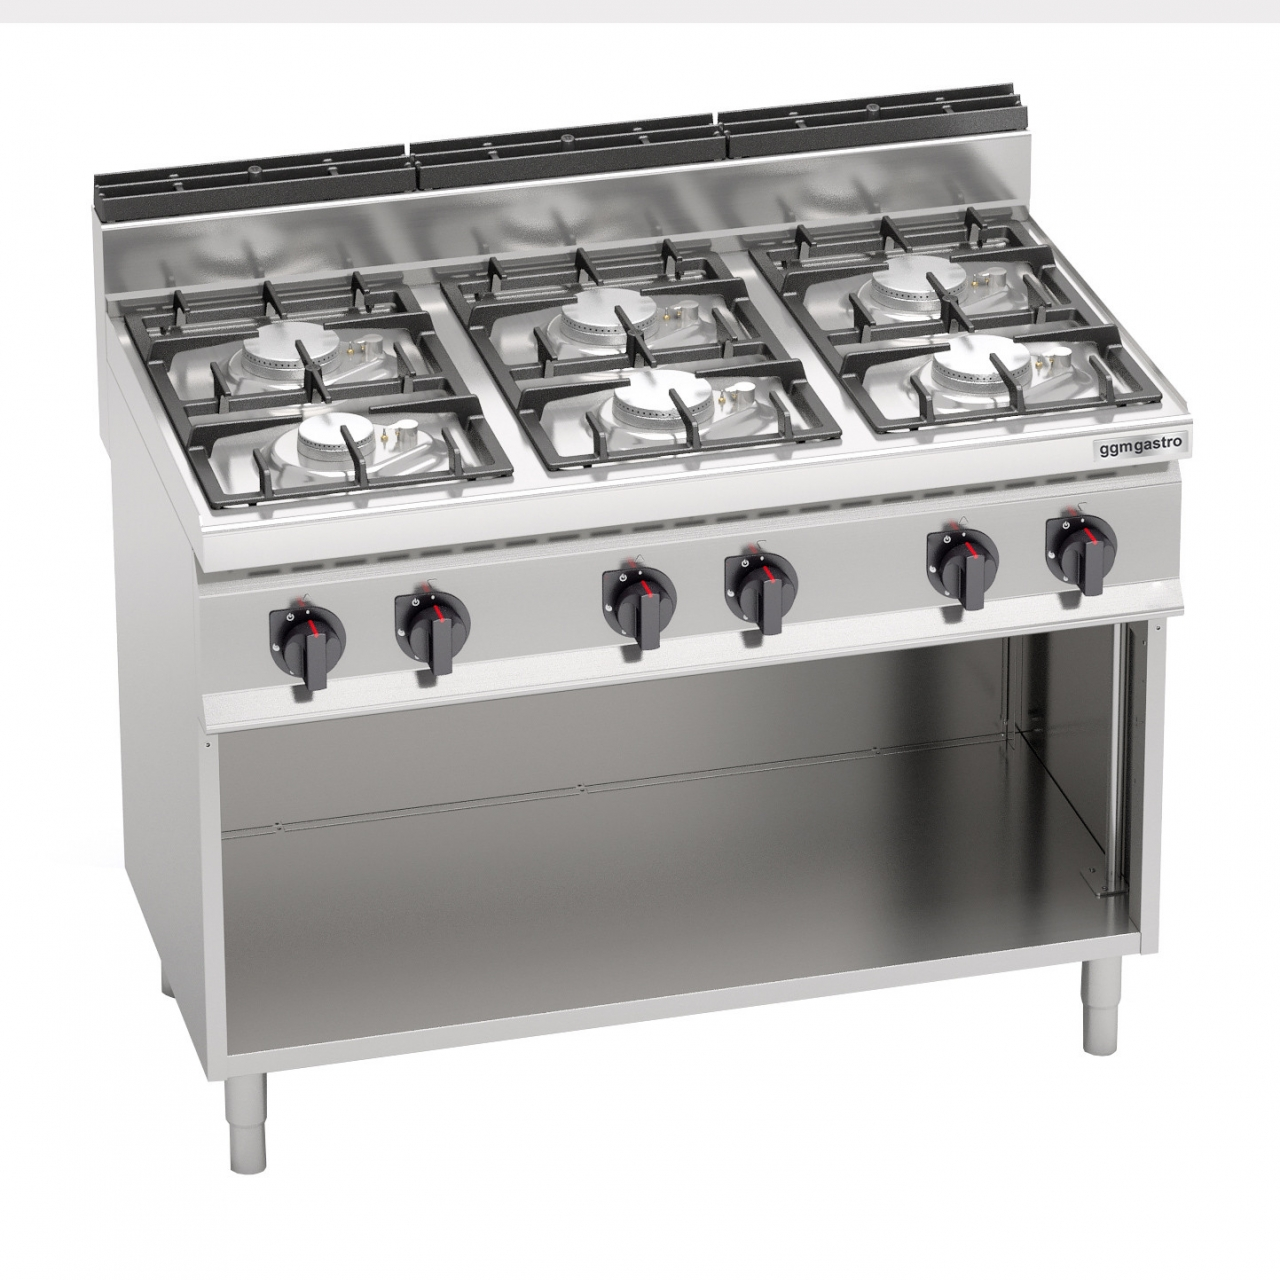 Gas stove with 6 burners 31.5 kW